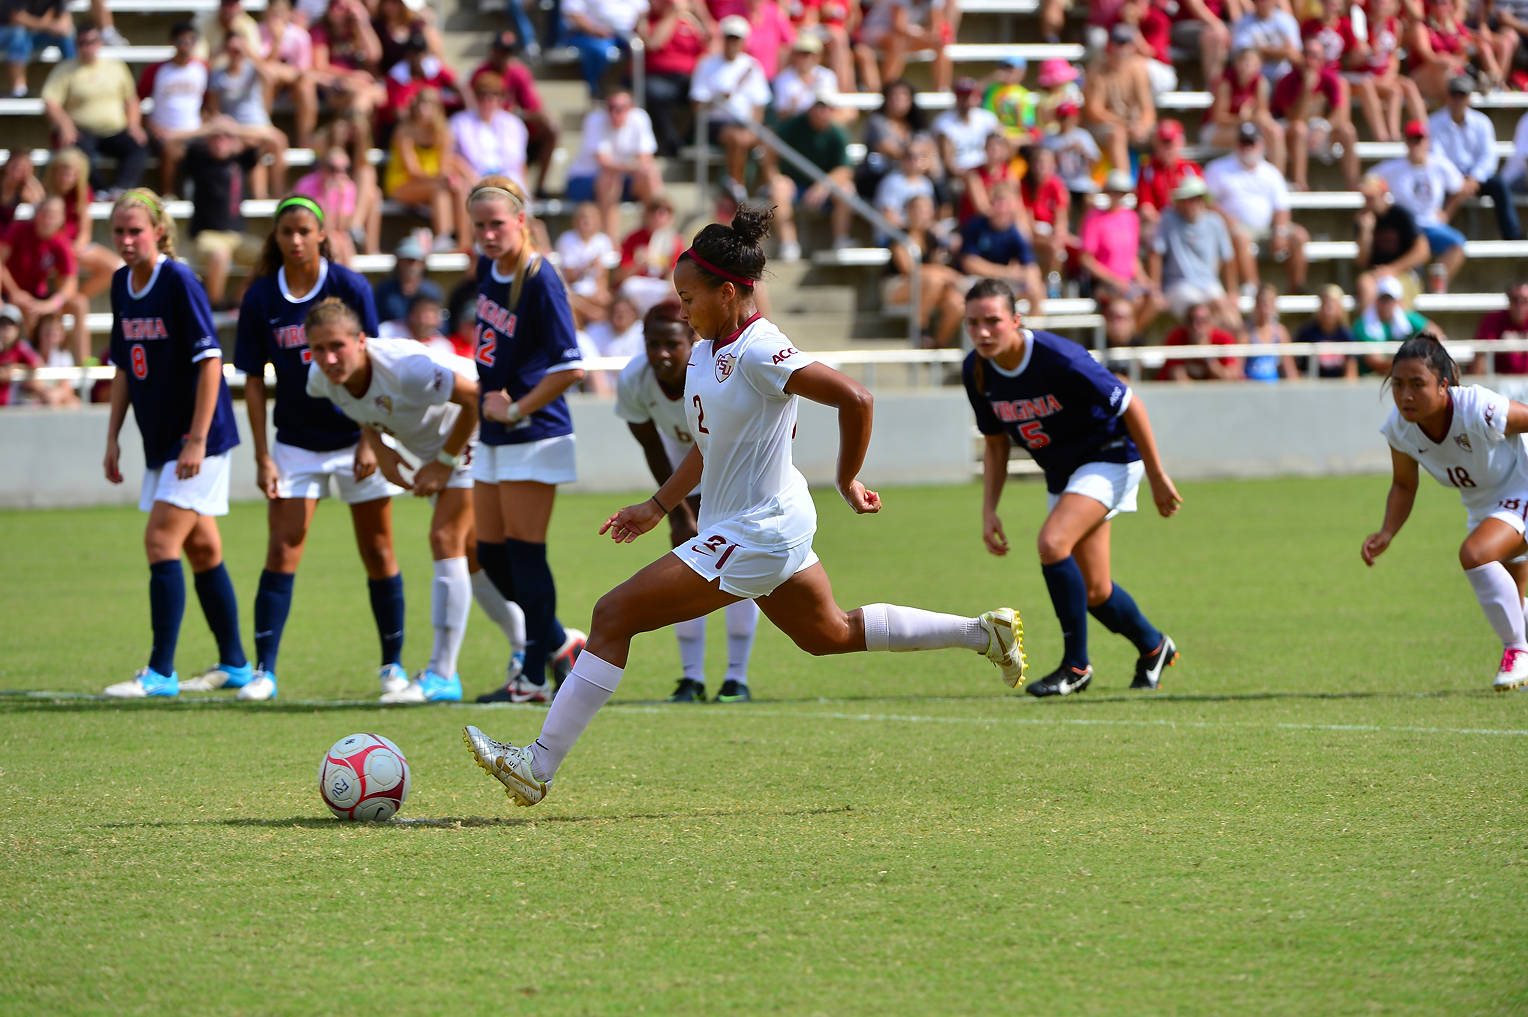 Ines Jaurena attempts the pk in the first overtime.